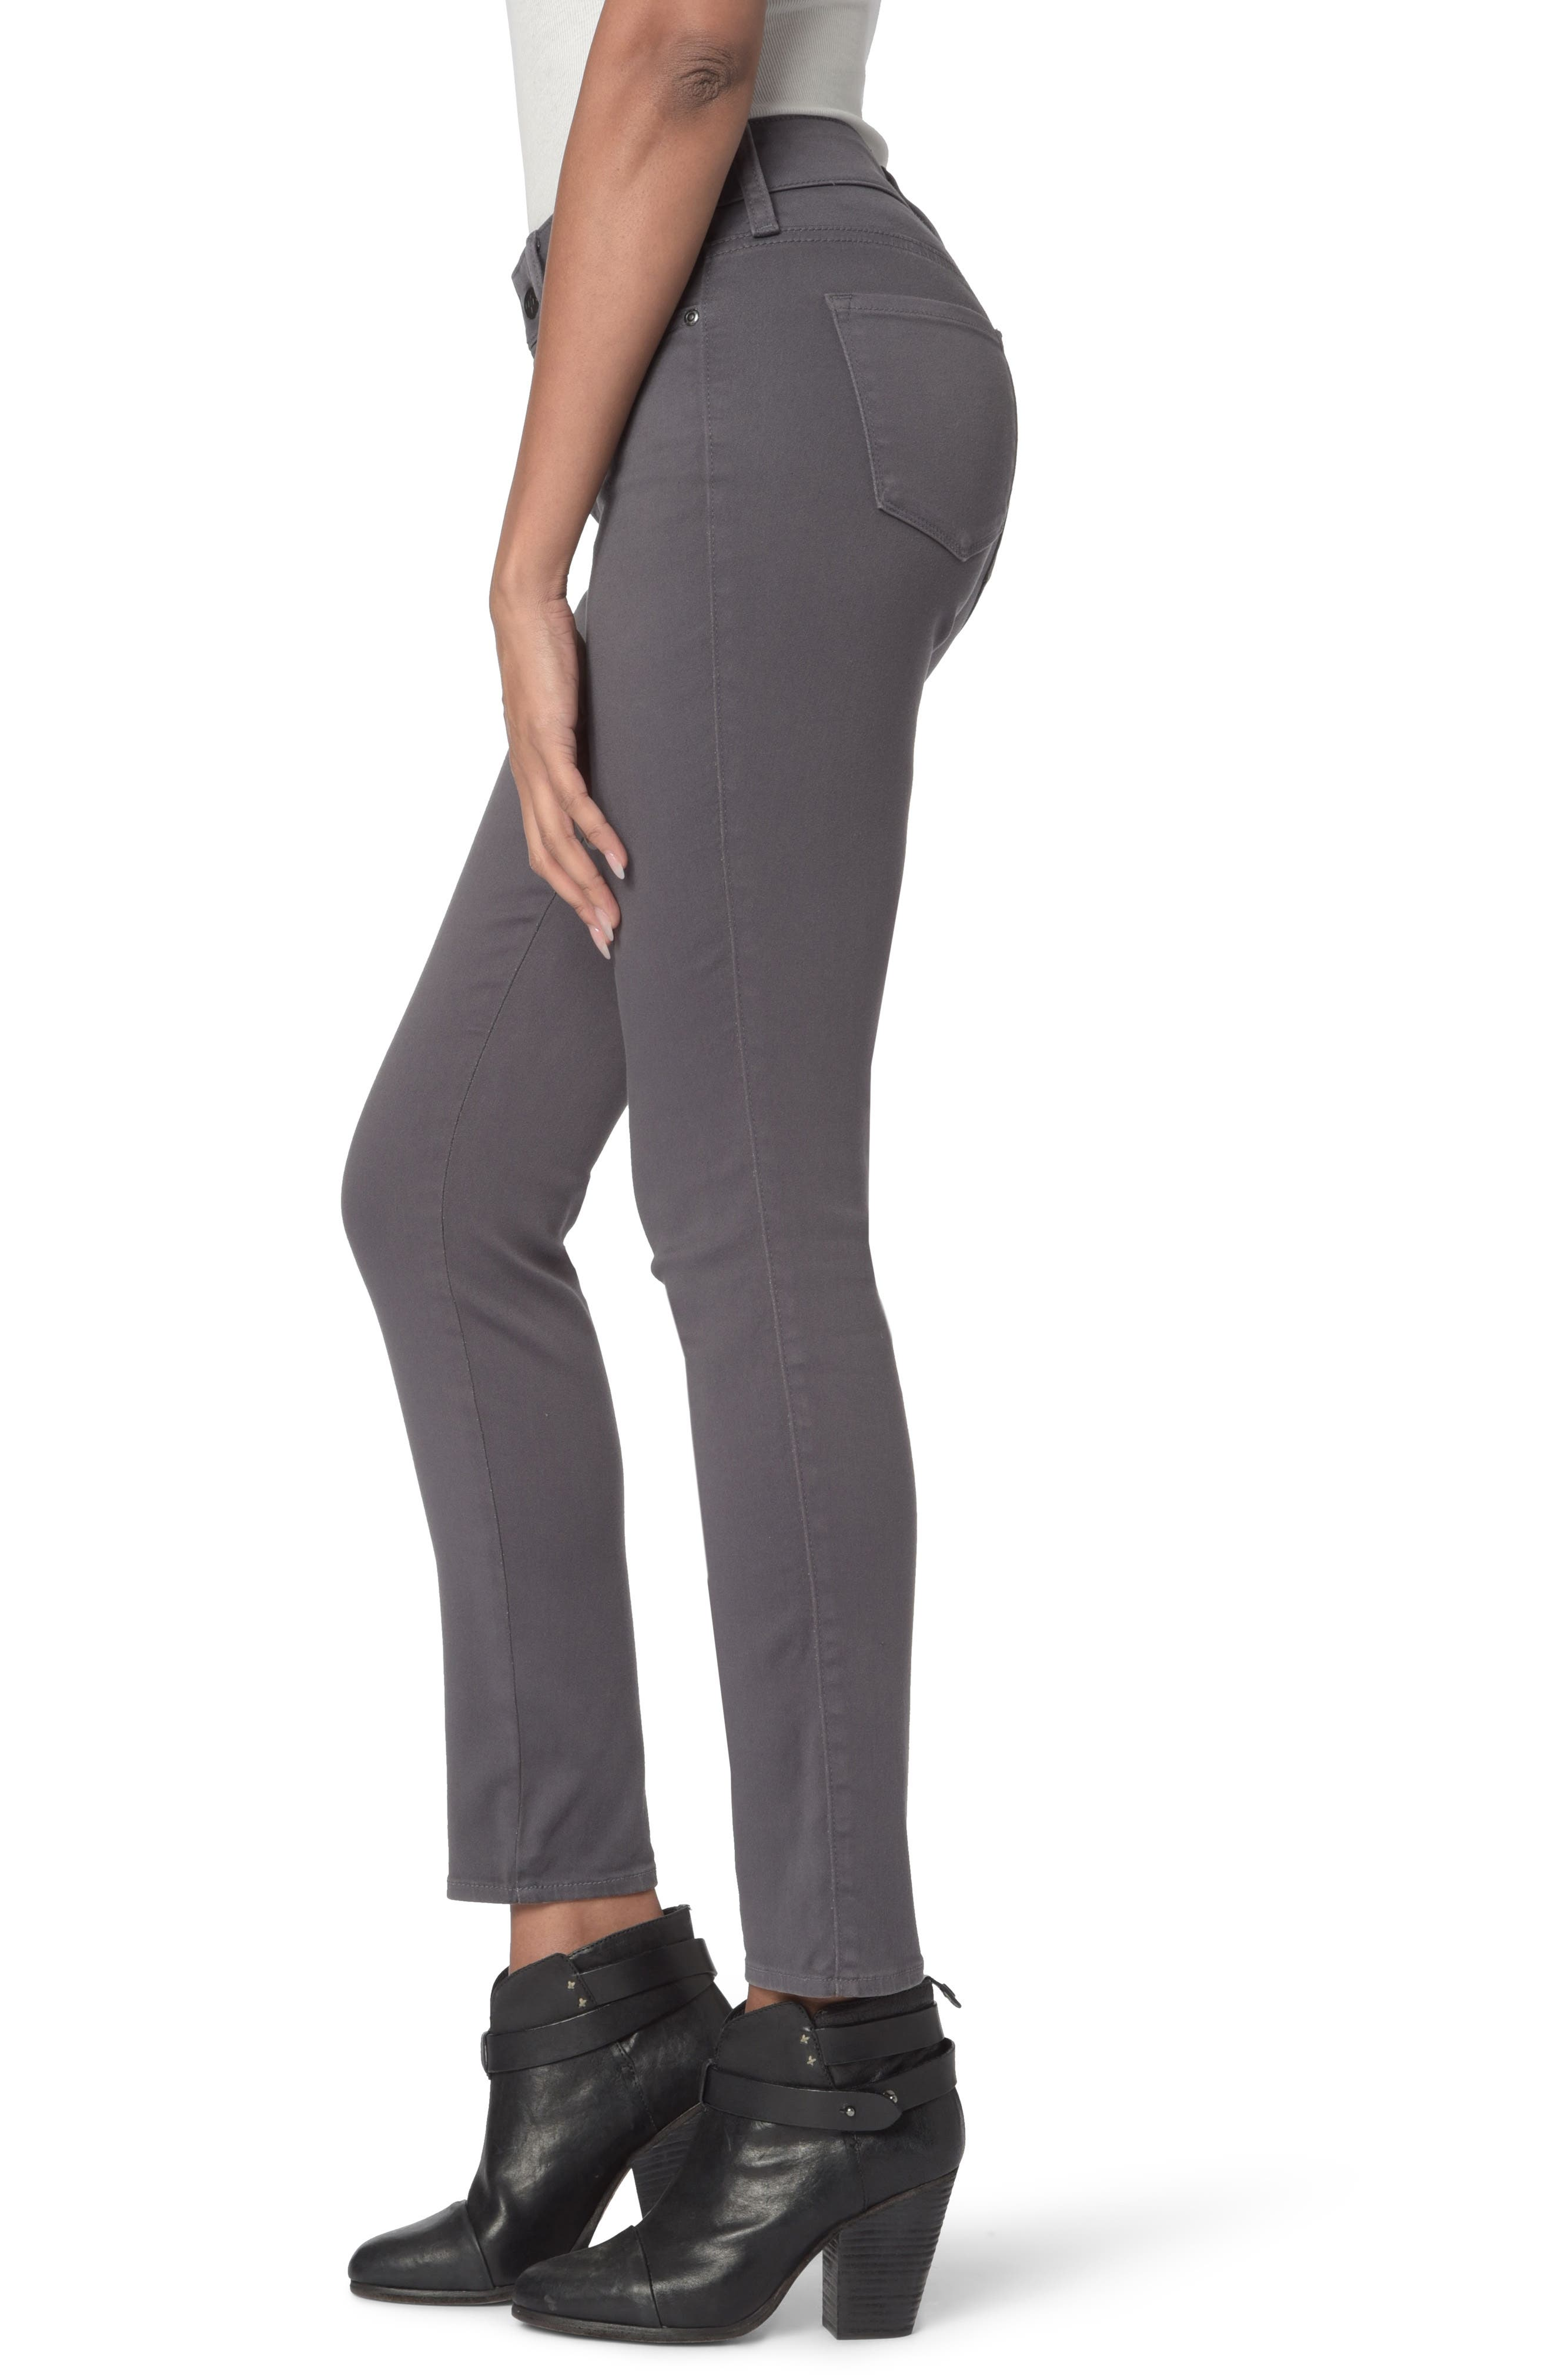 Ami High Waist Colored Stretch Skinny Jeans,                             Alternate thumbnail 3, color,                             VINTAGE PEWTER